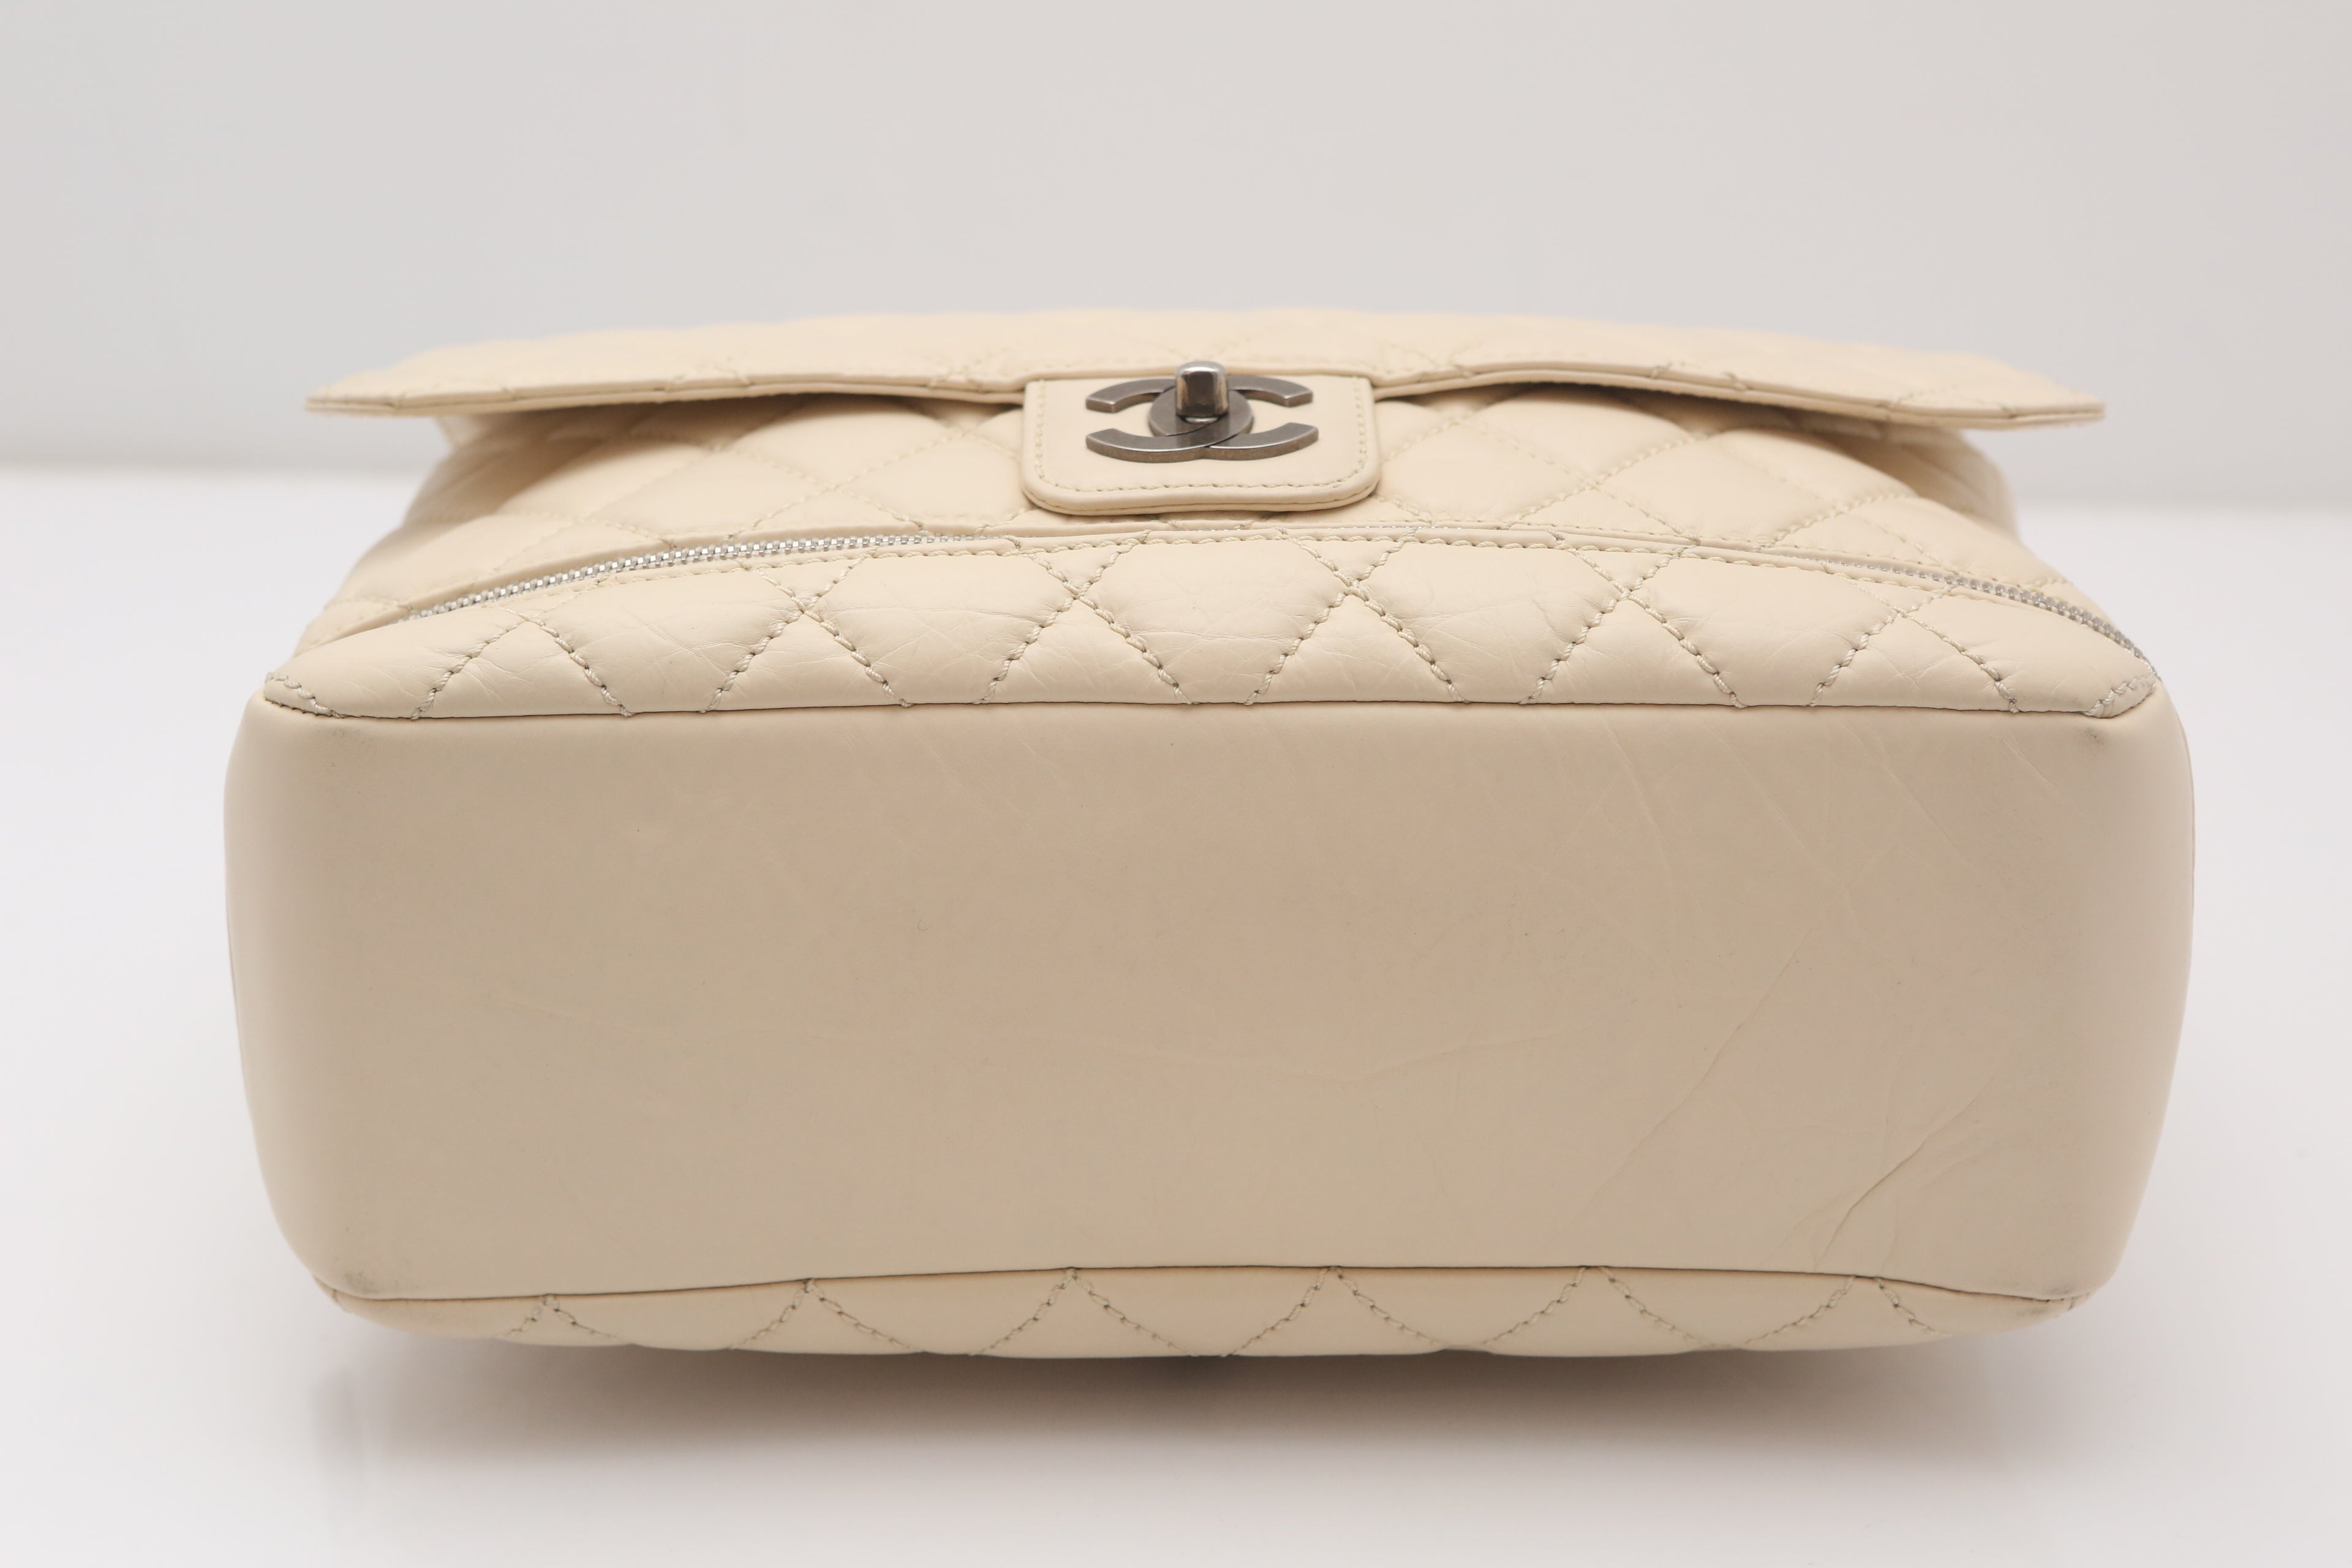 483aee261fa 2005-2006 Chanel Paris Ivory Expandable Quilted Handbag at 1stdibs